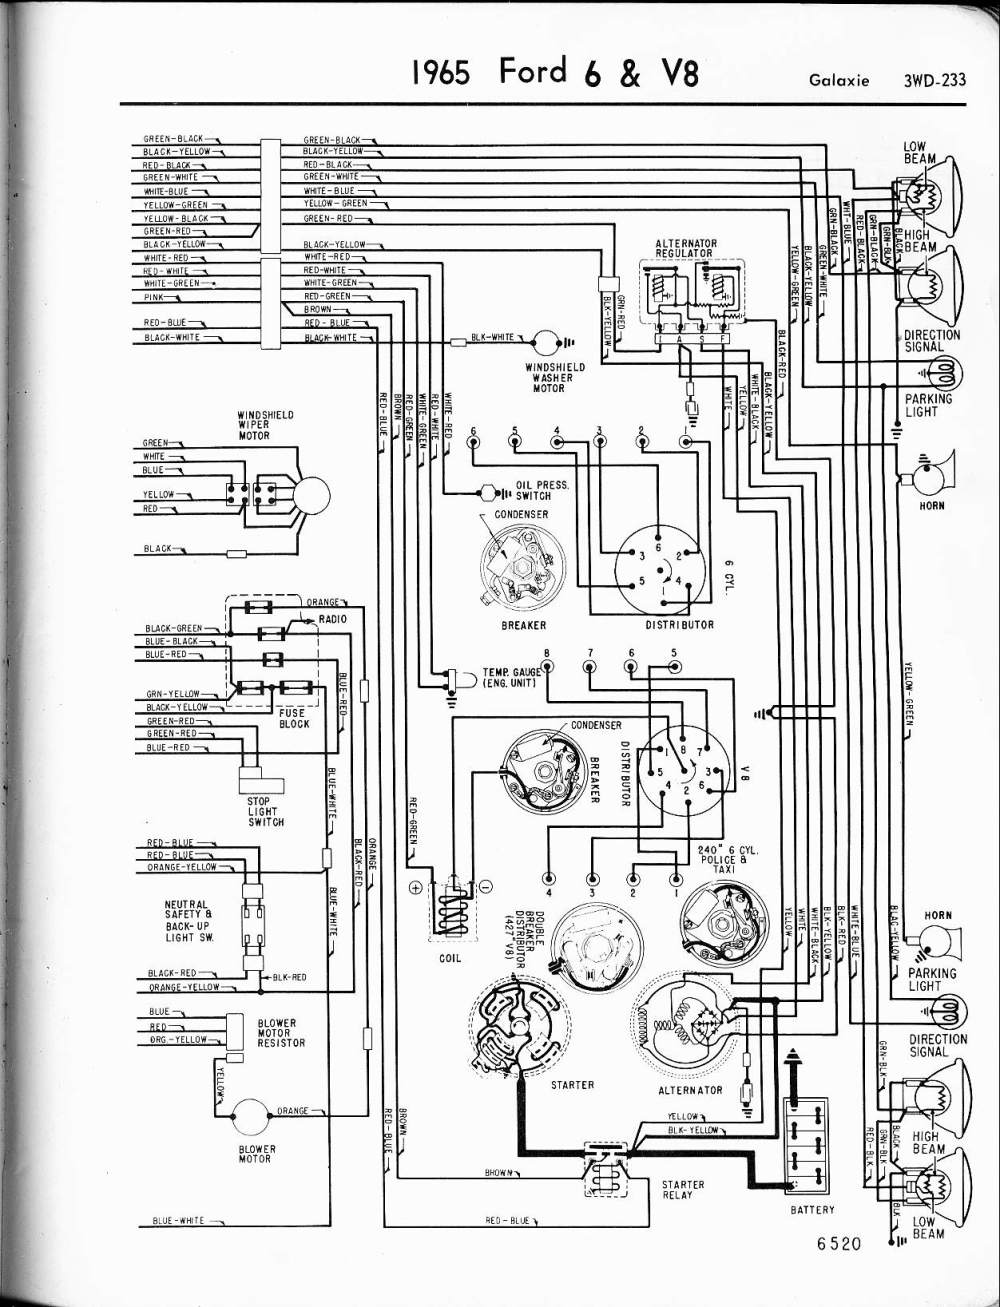 medium resolution of 1965 ford f 350 wiring diagram wiring diagram third level 1977 ford f 250 wiring diagram 1965 ford f250 wiring diagram